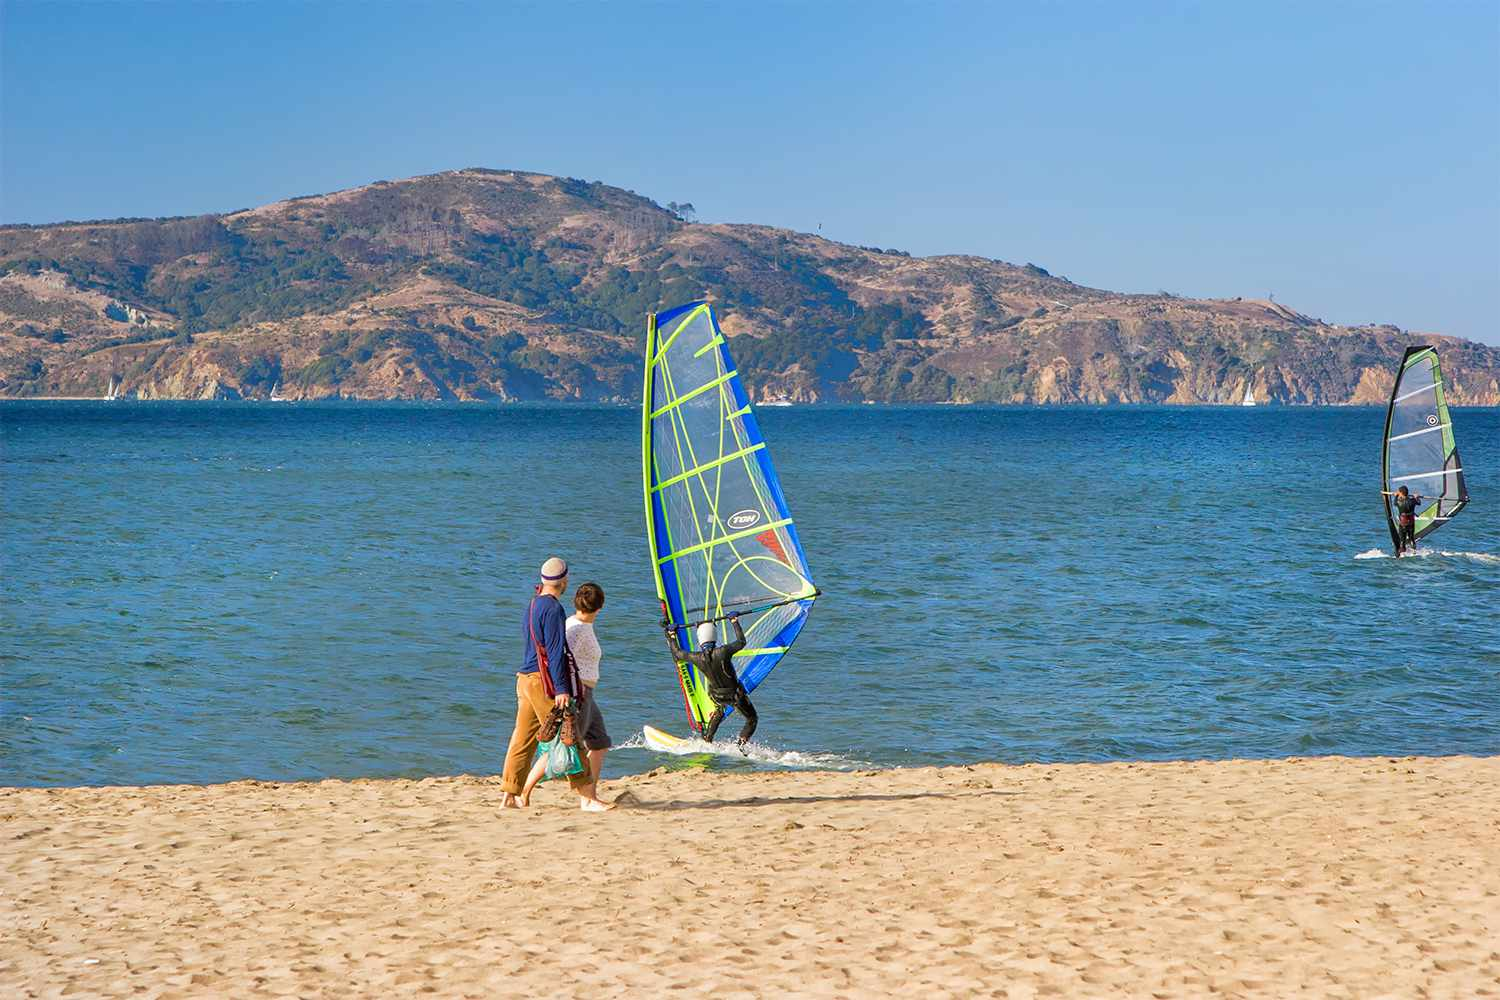 Two people walking on beach with windsurfers in water